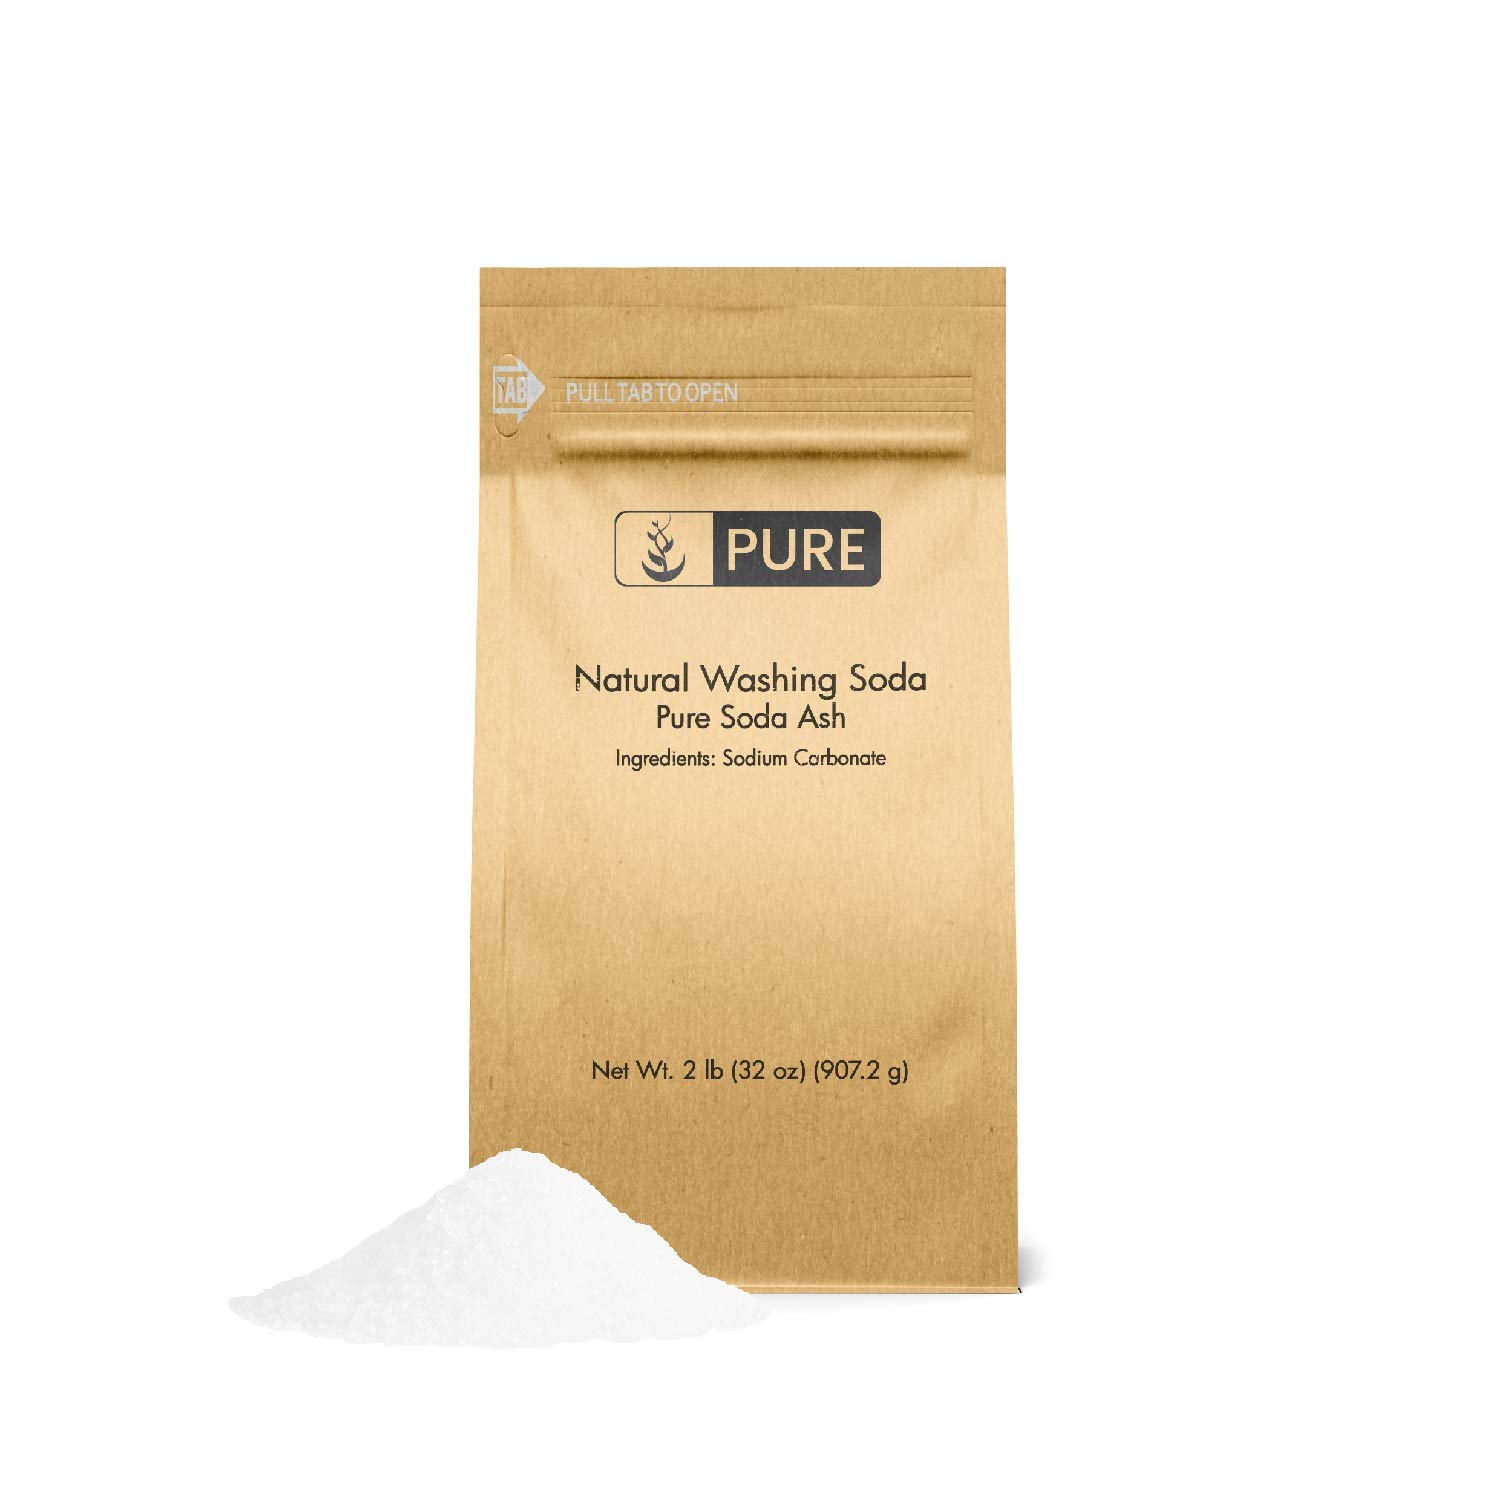 Natural Washing Soda (2 lb.) by Pure Organic Ingredients, Also Called Soda Ash or Sodium Carbonate, Eco-Friendly Packaging, Multi-Purpose Cleaner, Water Softener, Stain-Remover by Pure Organic Ingredients